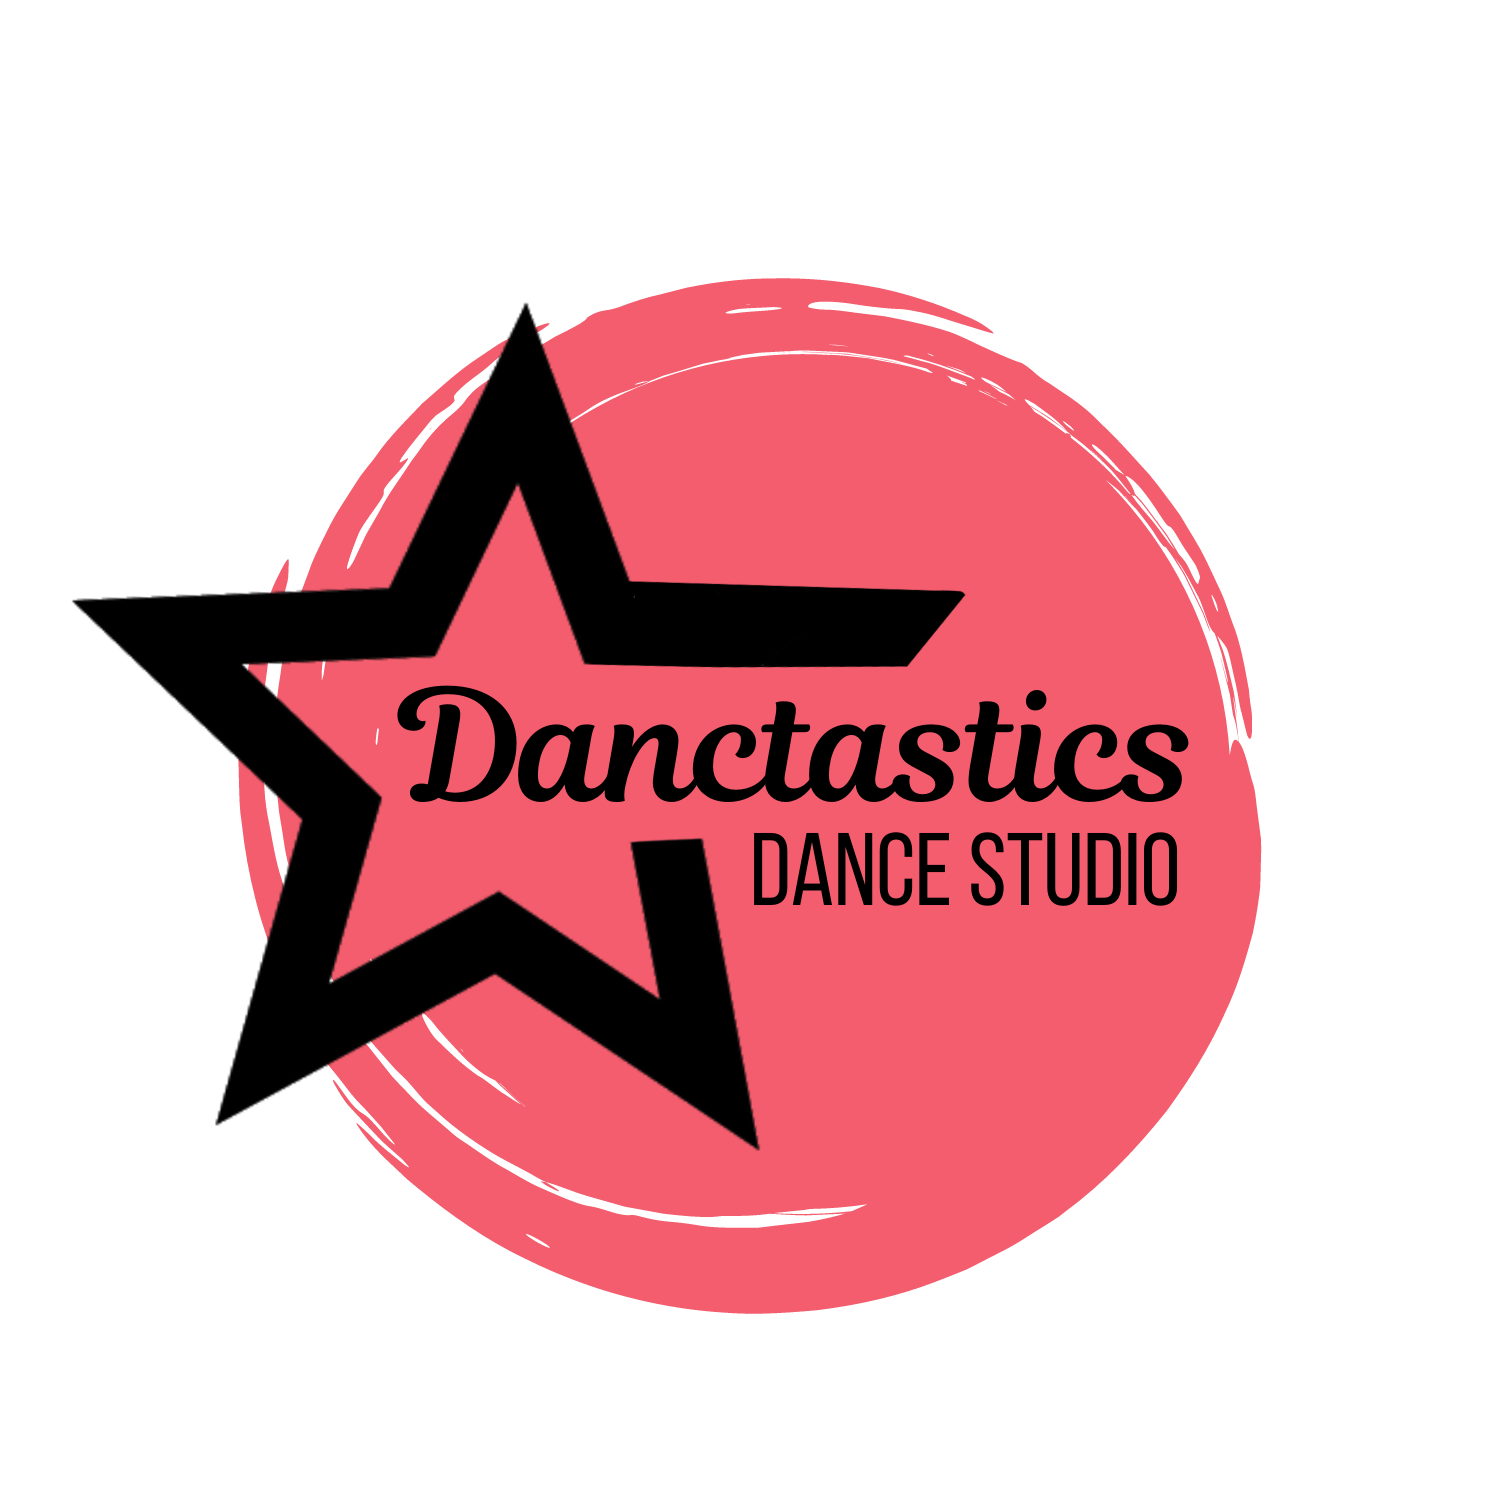 Danctastics Dance Studio